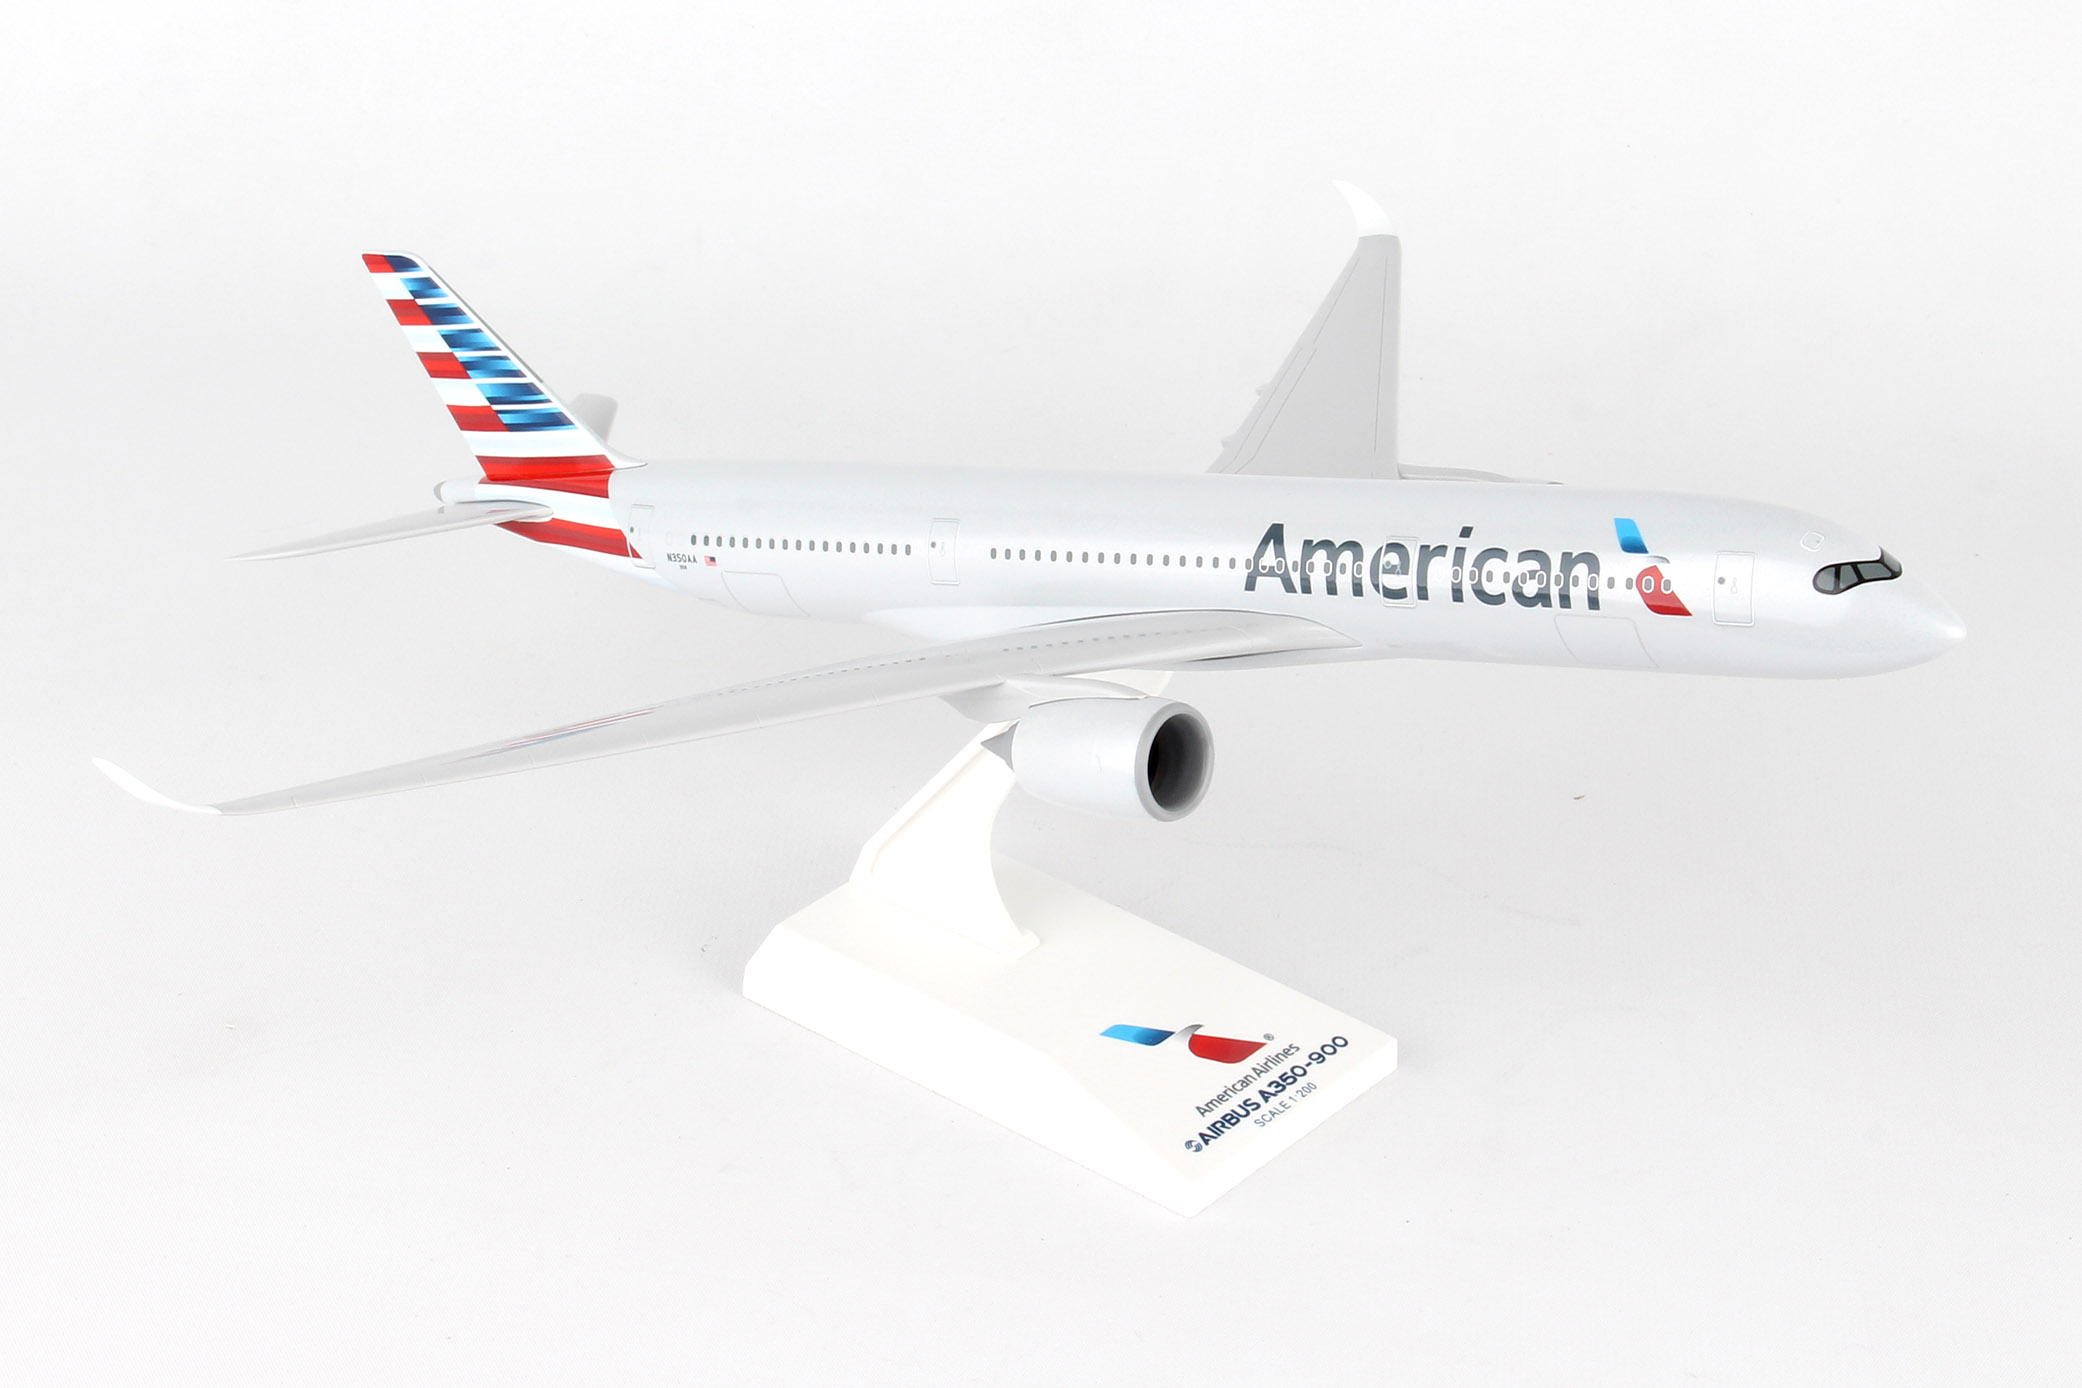 SkyMarks Flugzeugmodell American Airlines Airbus A350 (1:200)